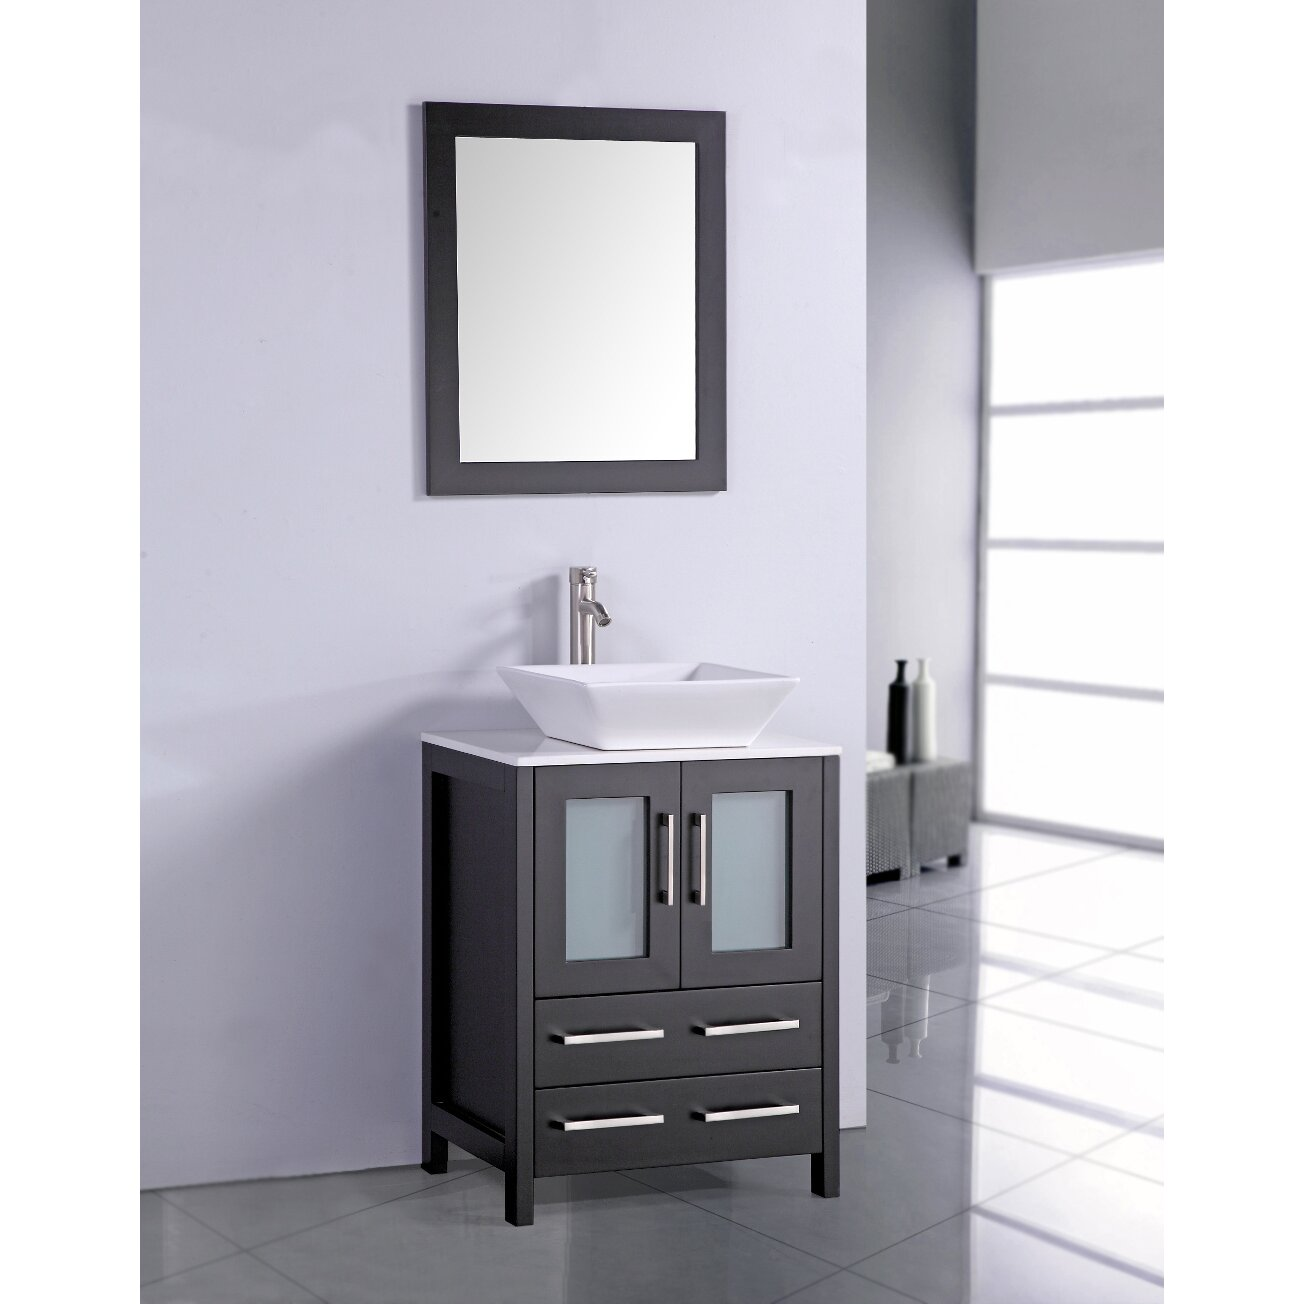 Legion furniture 24 single bathroom vanity set with for Single bathroom vanity